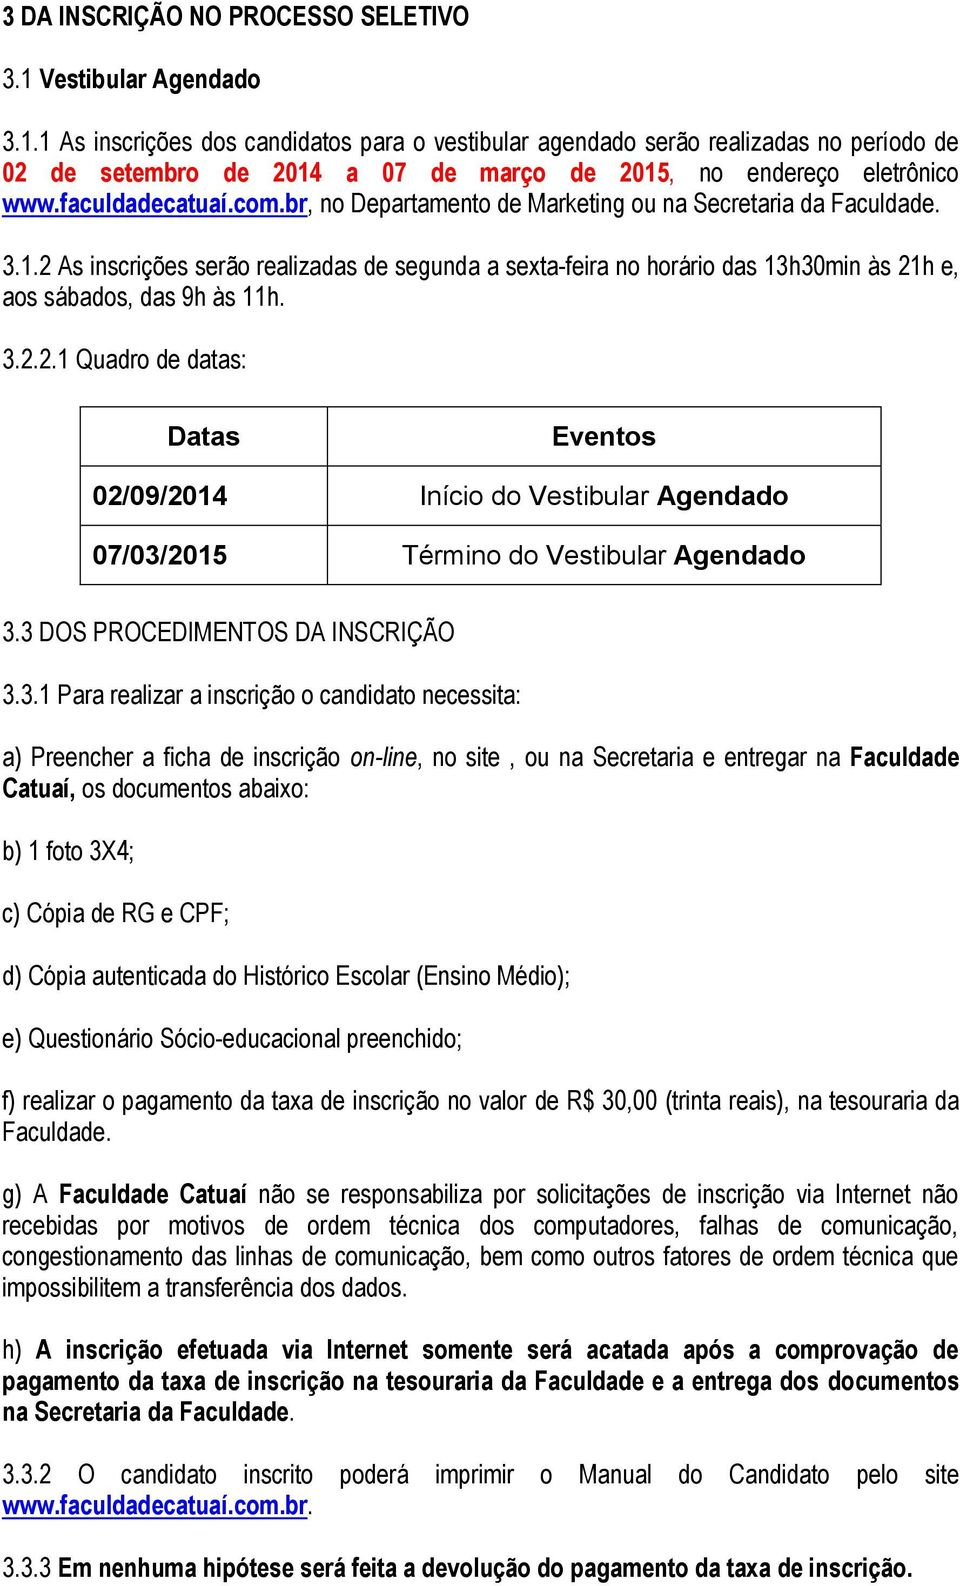 faculdadecatuaí.com.br, no Departamento de Marketing ou na Secretaria da Faculdade. 3.1.